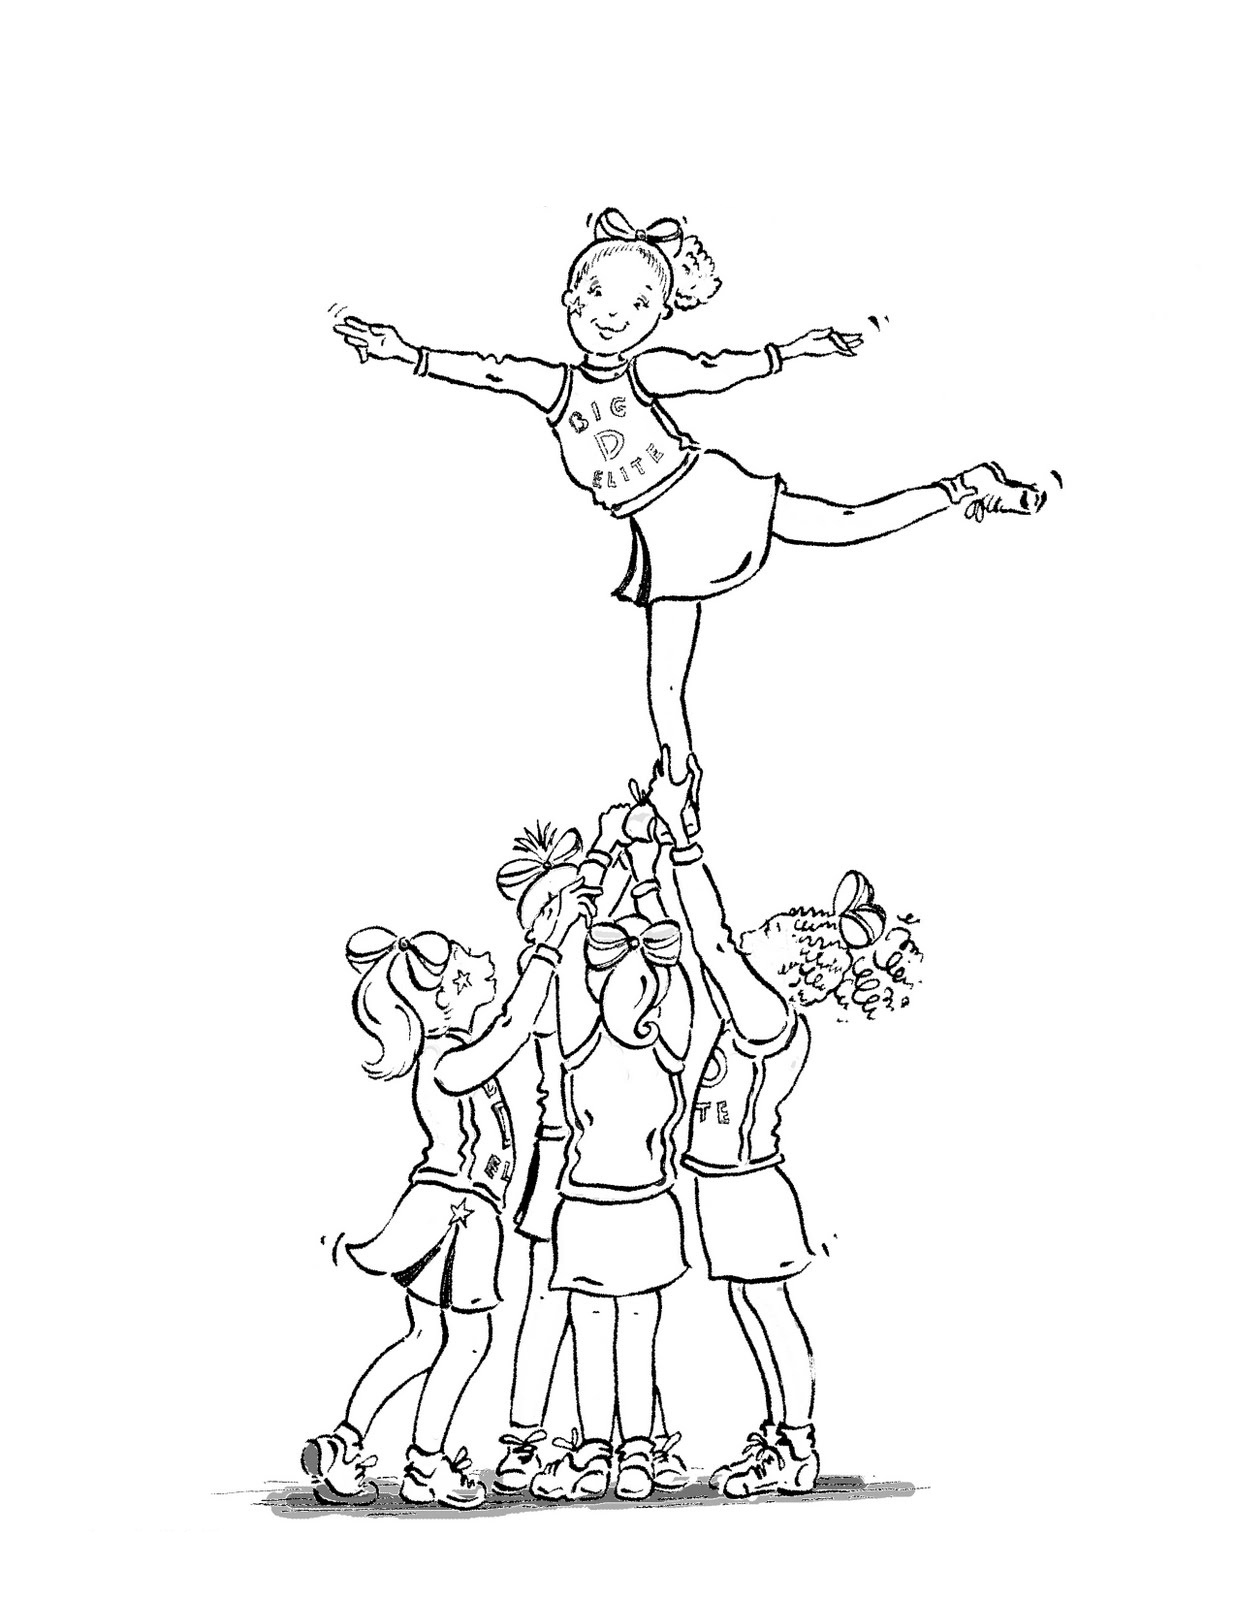 1236x1600 Free Printable Cheerleading Coloring Pages For Kids